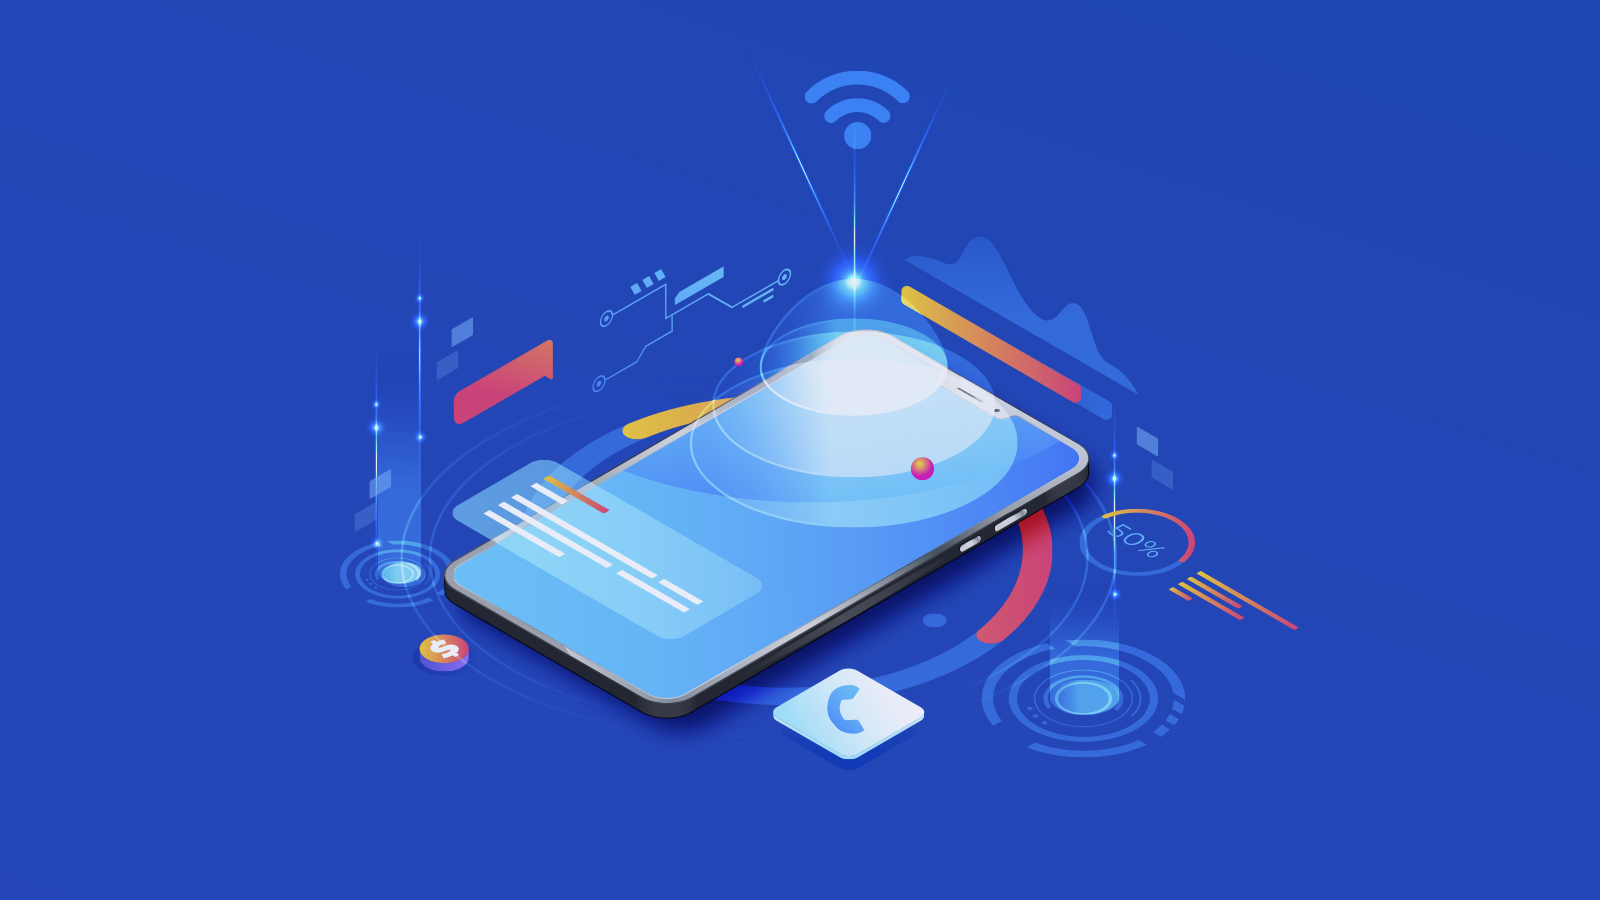 So You Want to Build a Mobile App: Novice Guide to Bringing Your Digital Brainchild to Life